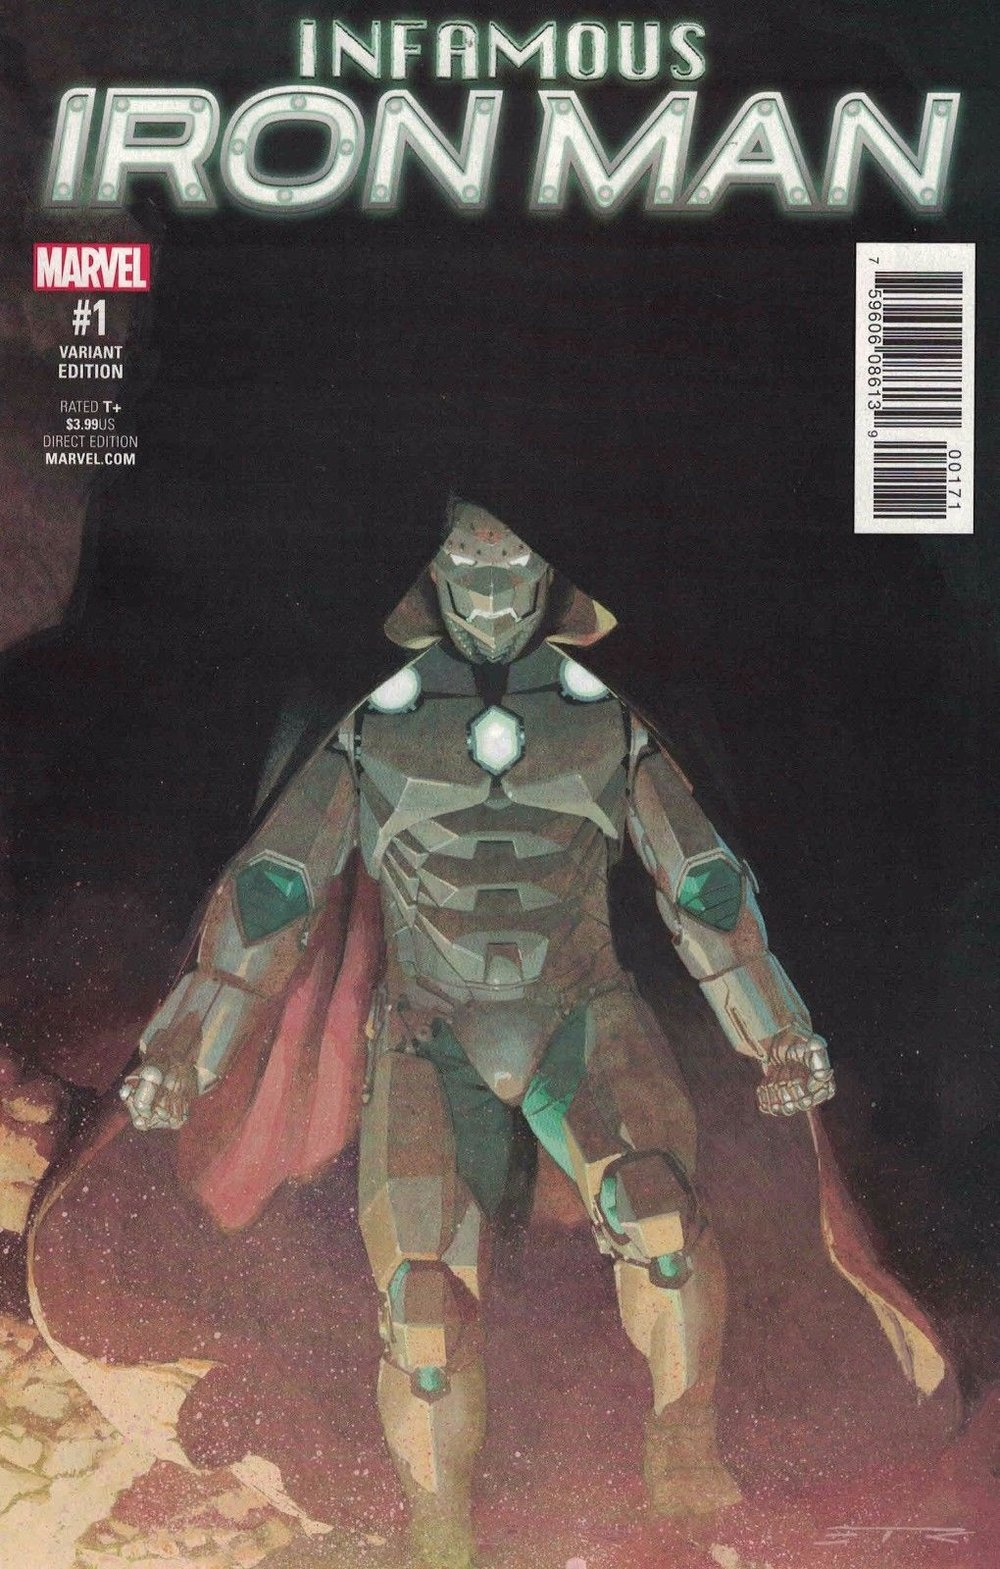 Infamous-Iron-Man-1-125-Esad-Ribic-Variant-NOW-Marvel-2016-Doctor-Doom-311724397728.jpg